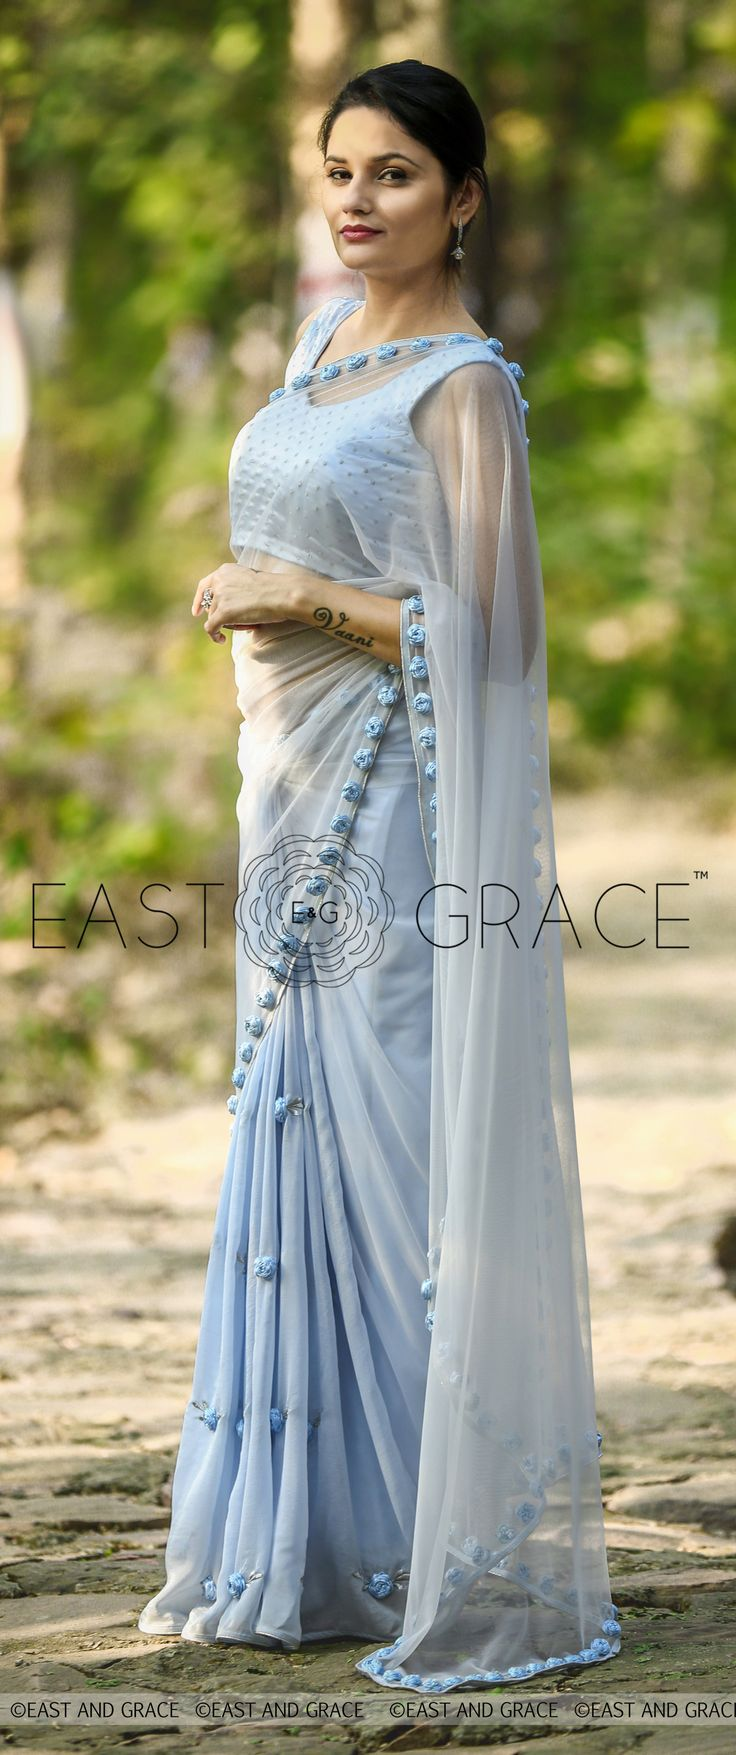 PRICE INR 7,956; US$ 120.55 To buy click here https://goo.gl/Ypc5yw Featuring the Moonlight saree in powder blue, flat pure silk chiffon with charming ribbonwork roses, that make for nothing but an ethereal, special-occasion dream. The net pallu is decorated with roses along the edges with artful detailing. It comes with an aptly complementing blouse material dotted throughout for a subtle sparkle, almost in a glitzy ode to the moonlight filled with ribbonwork roses. Reach…